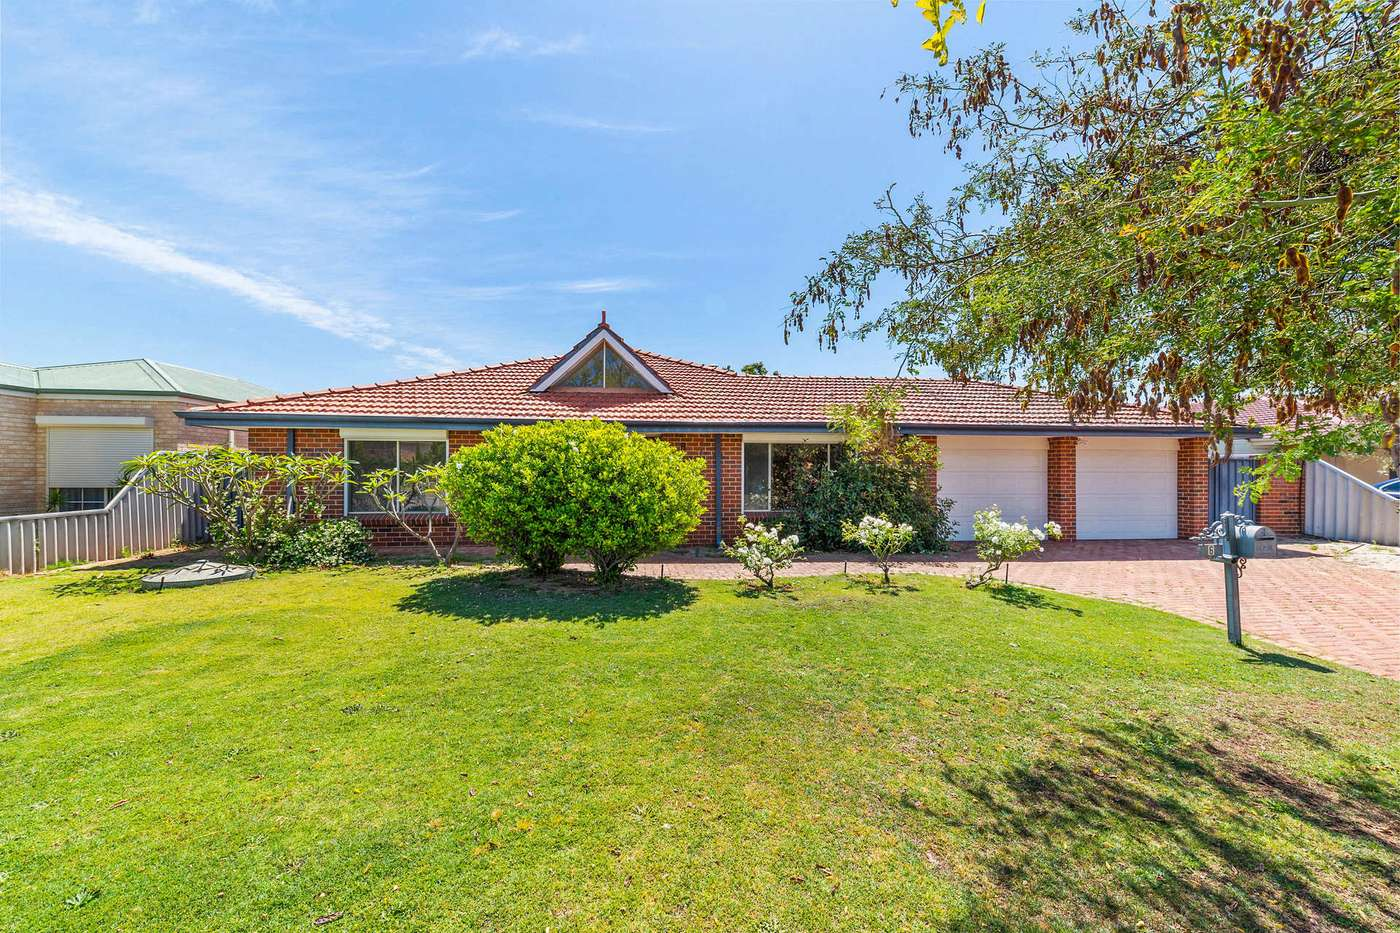 Main view of Homely house listing, 6 Tralee Way, Waterford, WA 6152